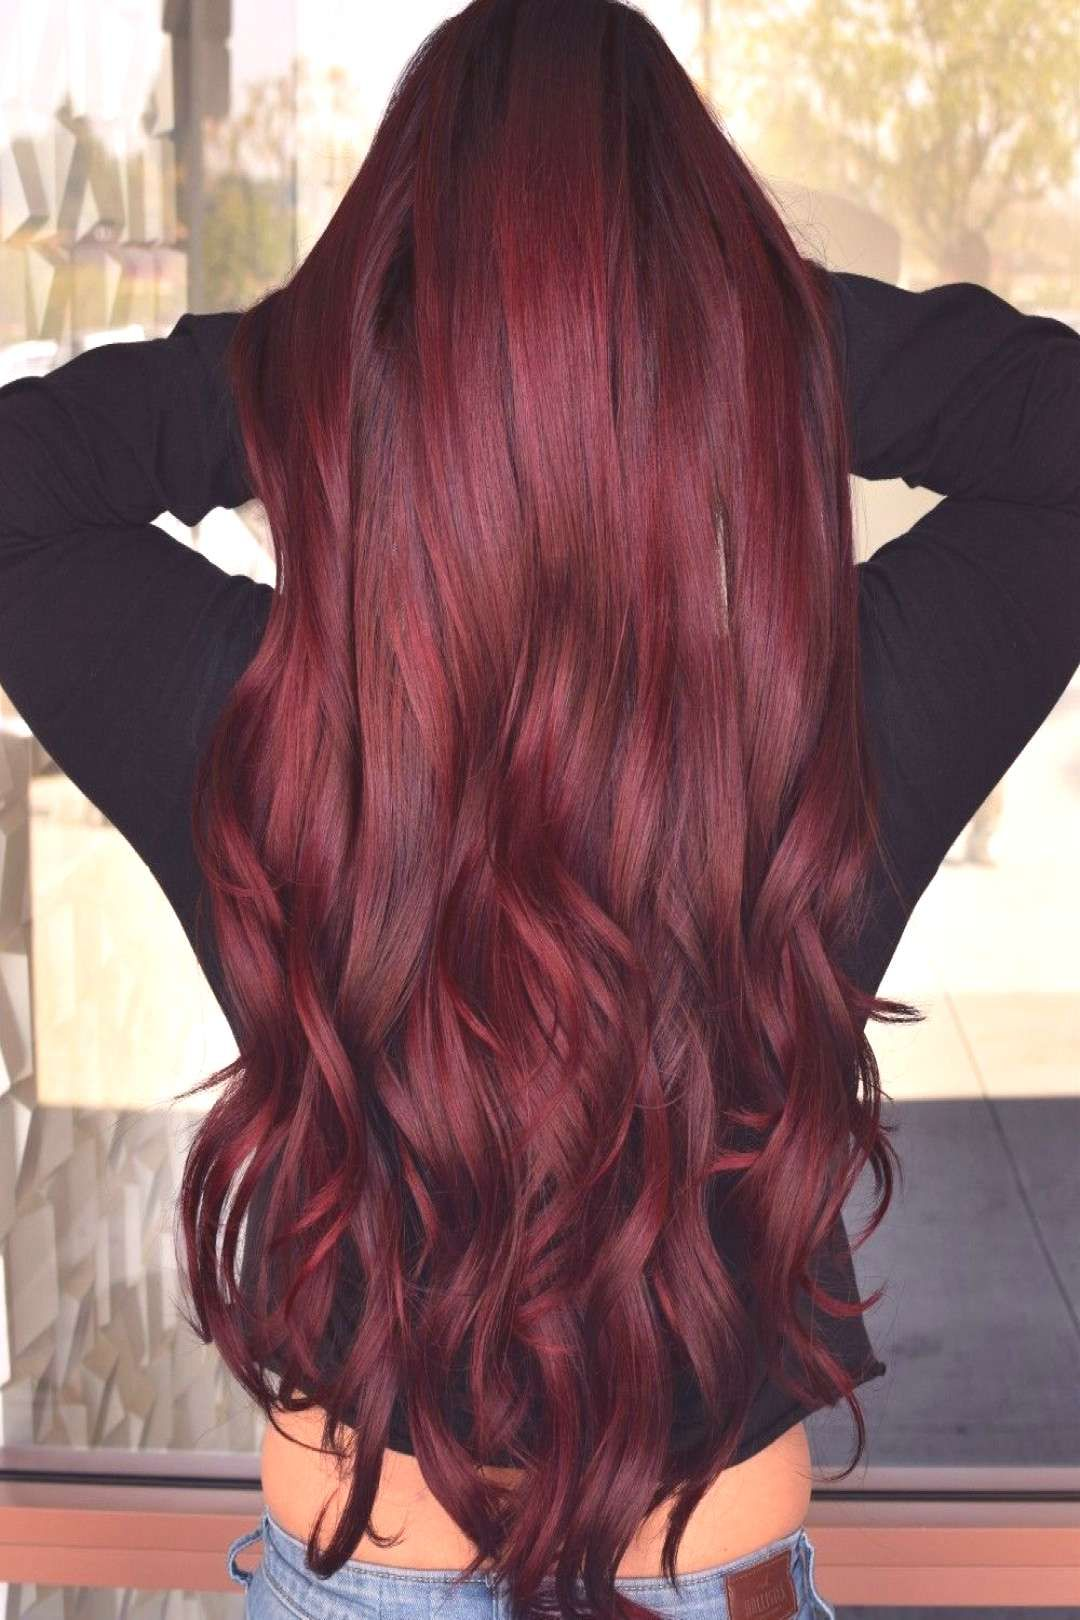 Deep Ruby Wine Hair Red Deep Red Ruby Wine Red Hair Deep Red Ruby Wine Red Hair You Can Find Dark Red Hair A In 2020 Hair Styles Shades Of Red Hair